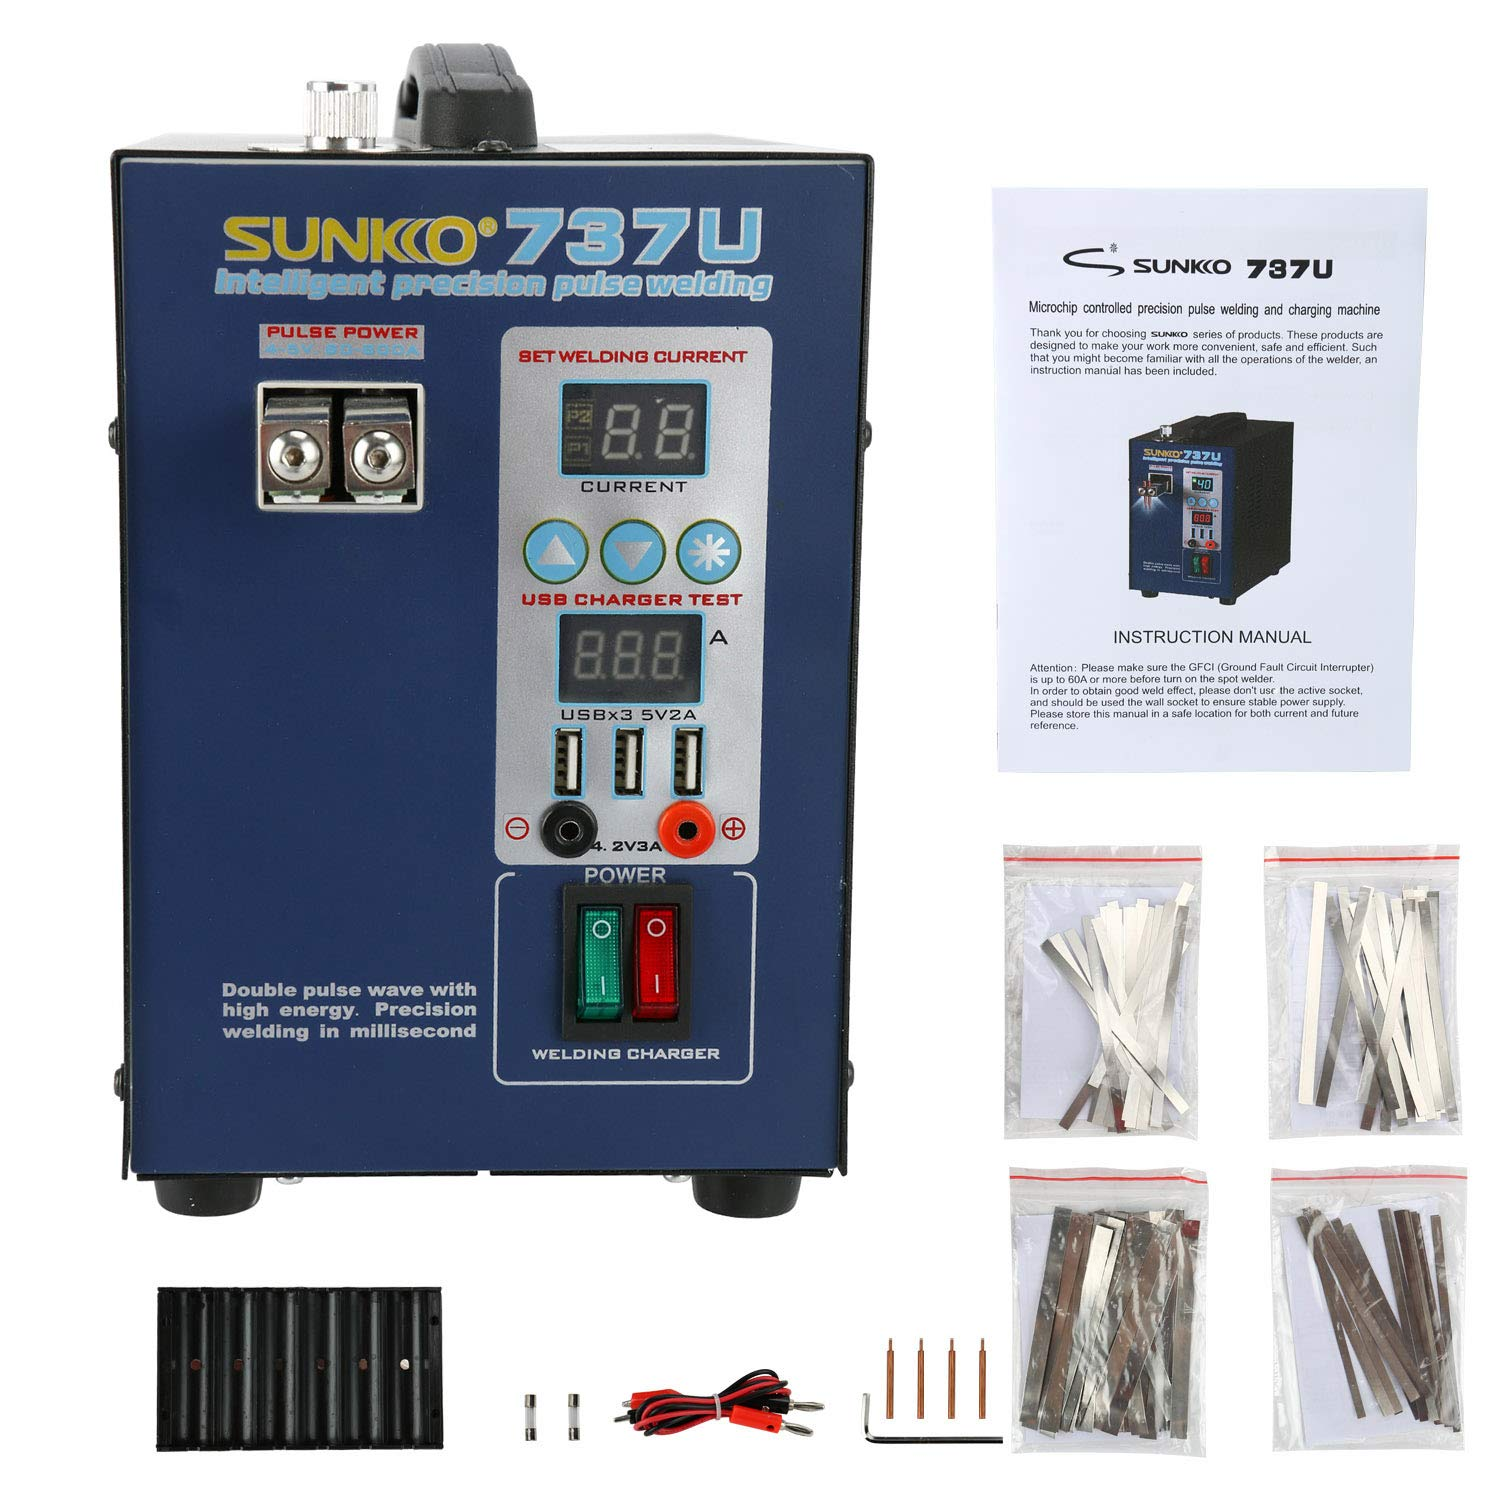 110v Battery Charger Schematic Diagram. . Wiring Diagram on